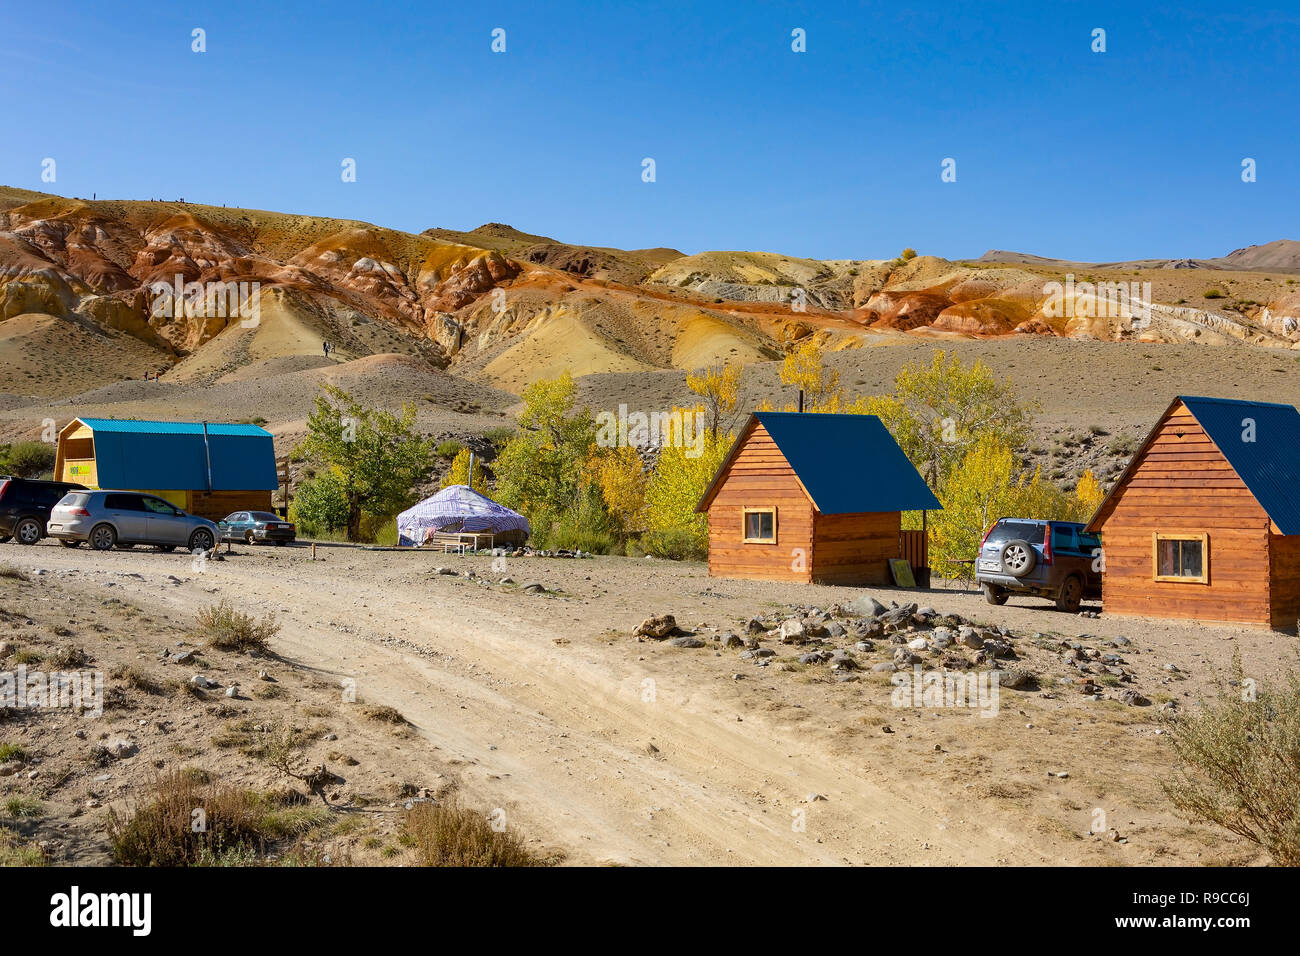 Tourist Parking Mars1 in the valley of the river Kyzyl-Chin, Altai Republic - Stock Image